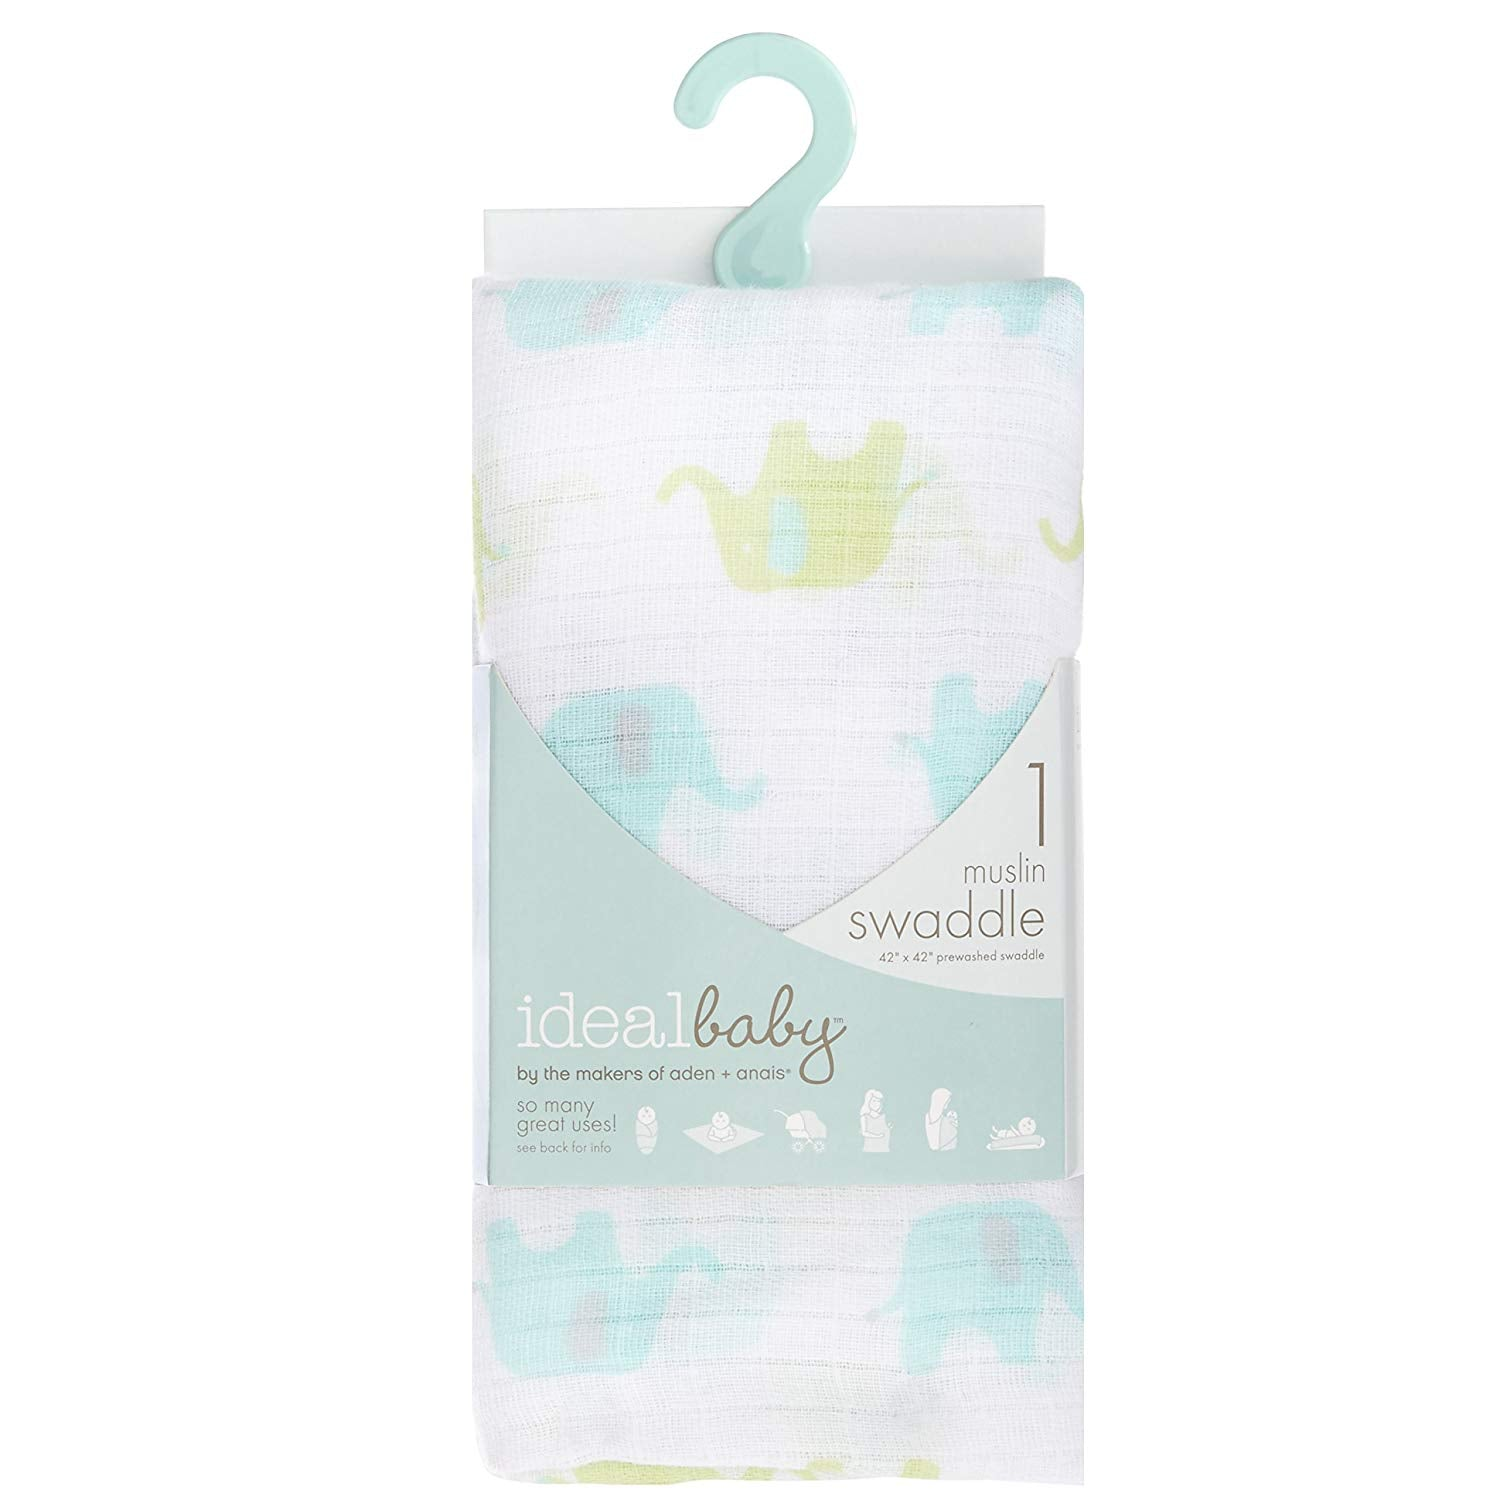 Aiden + Anais - Single Swaddle - Dreamy Elephants